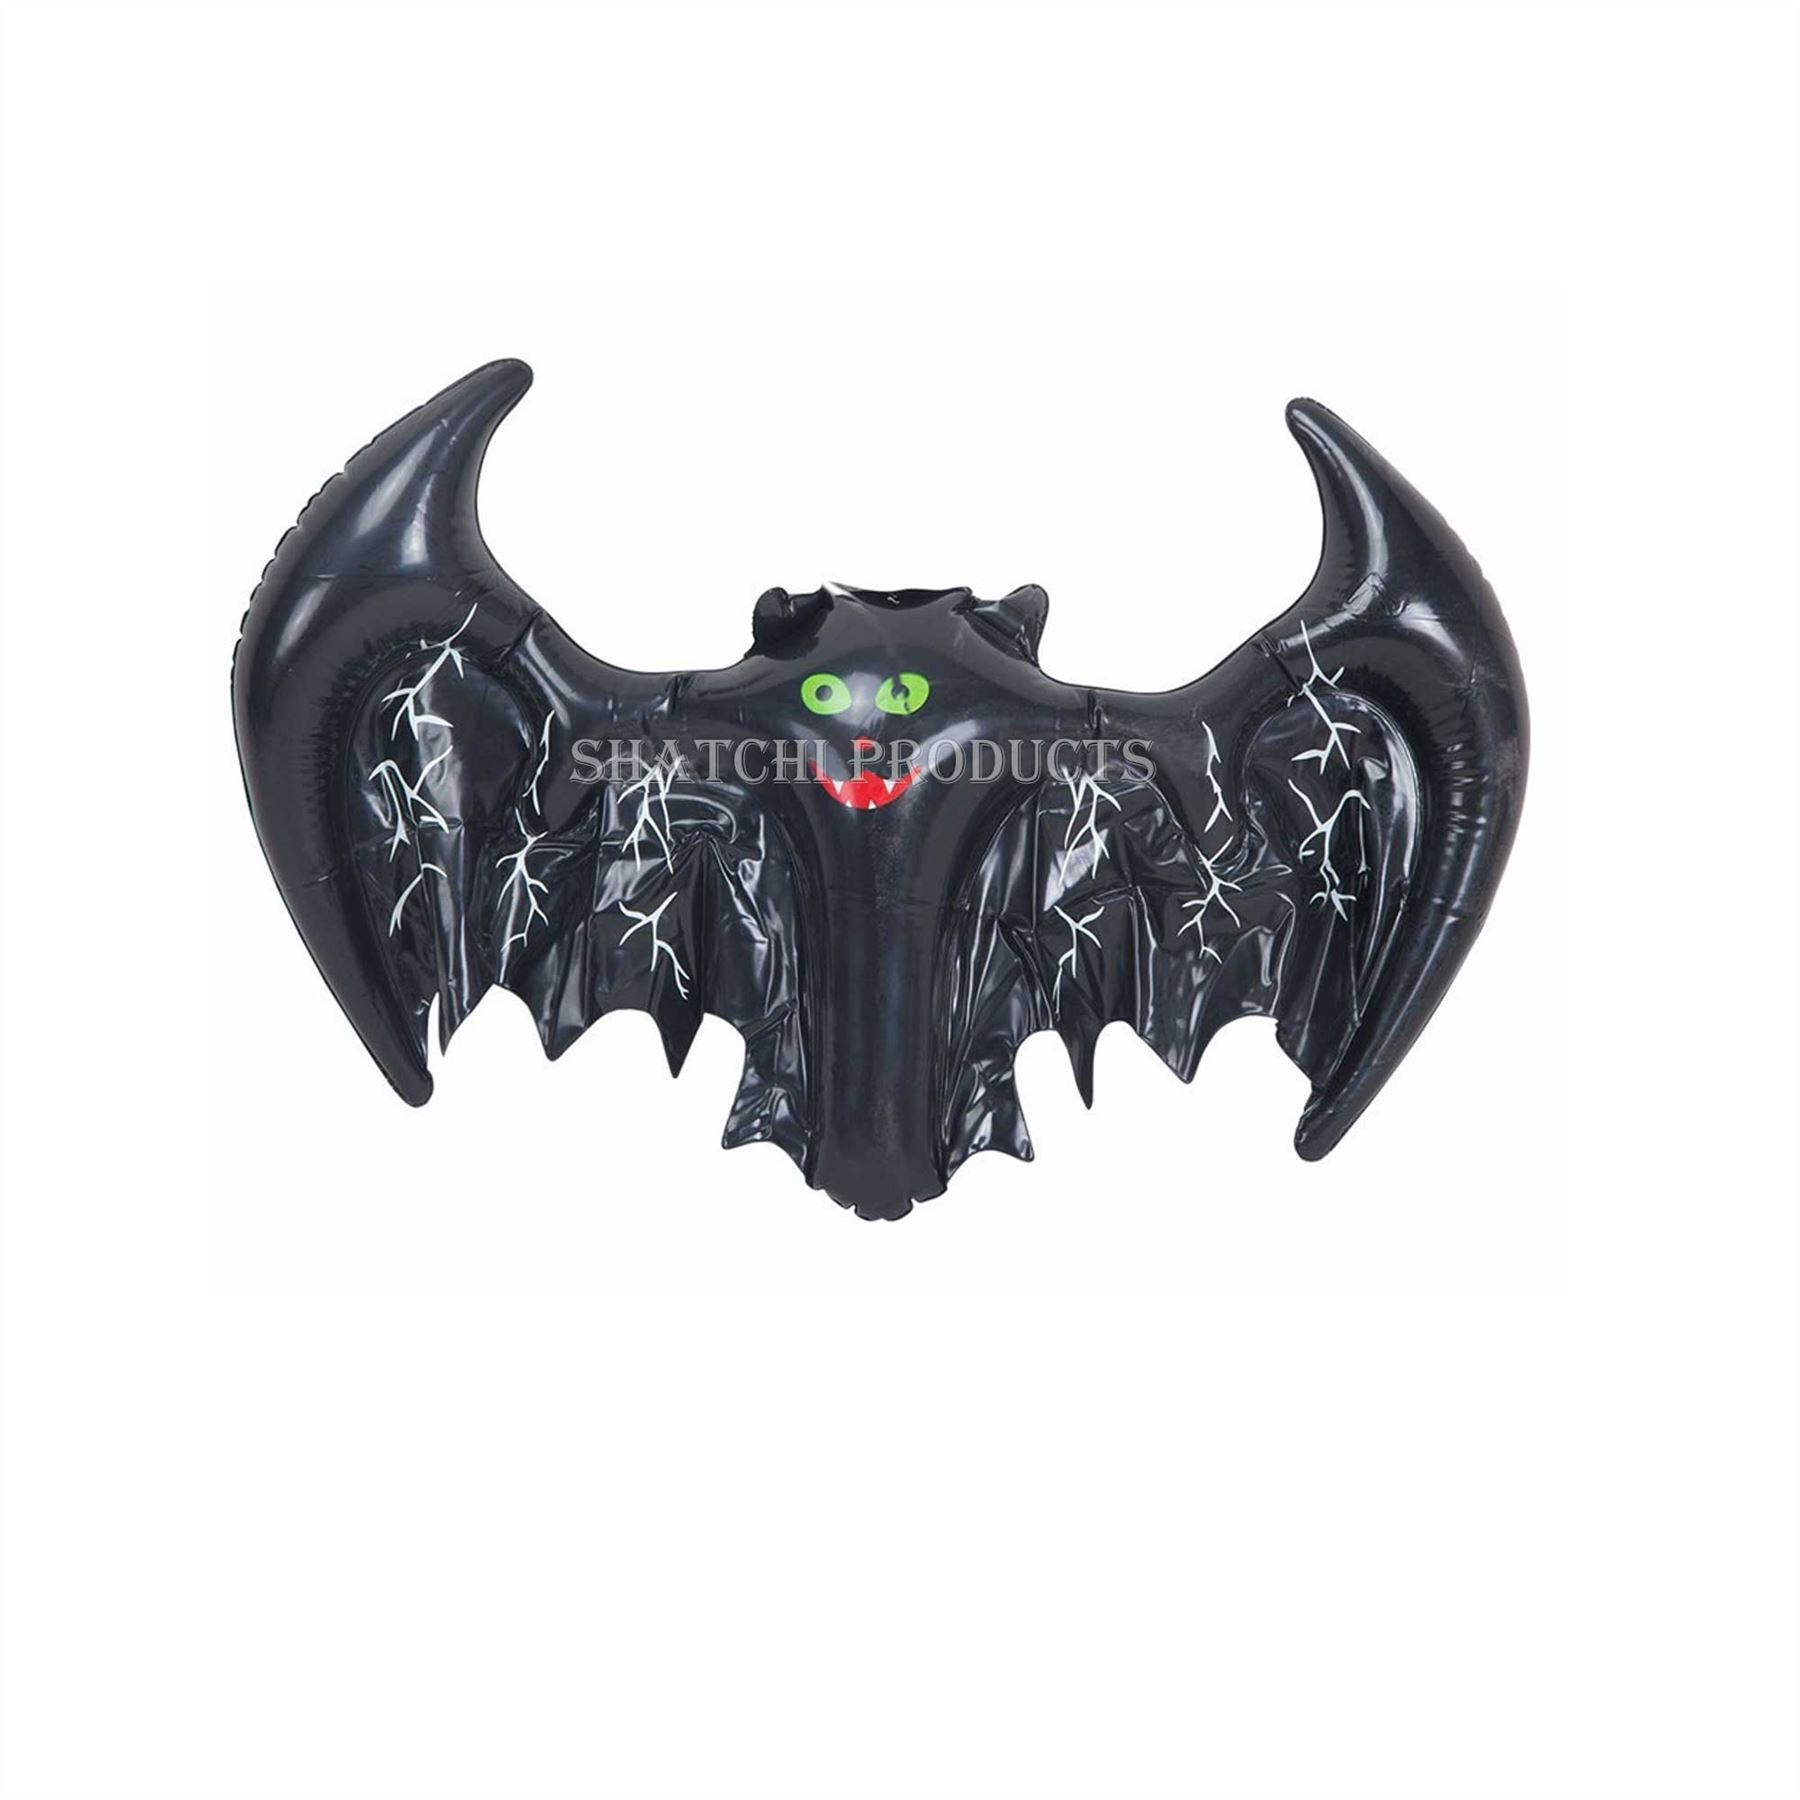 5pcs spooky scary halloween decoration inflatable bat party costume